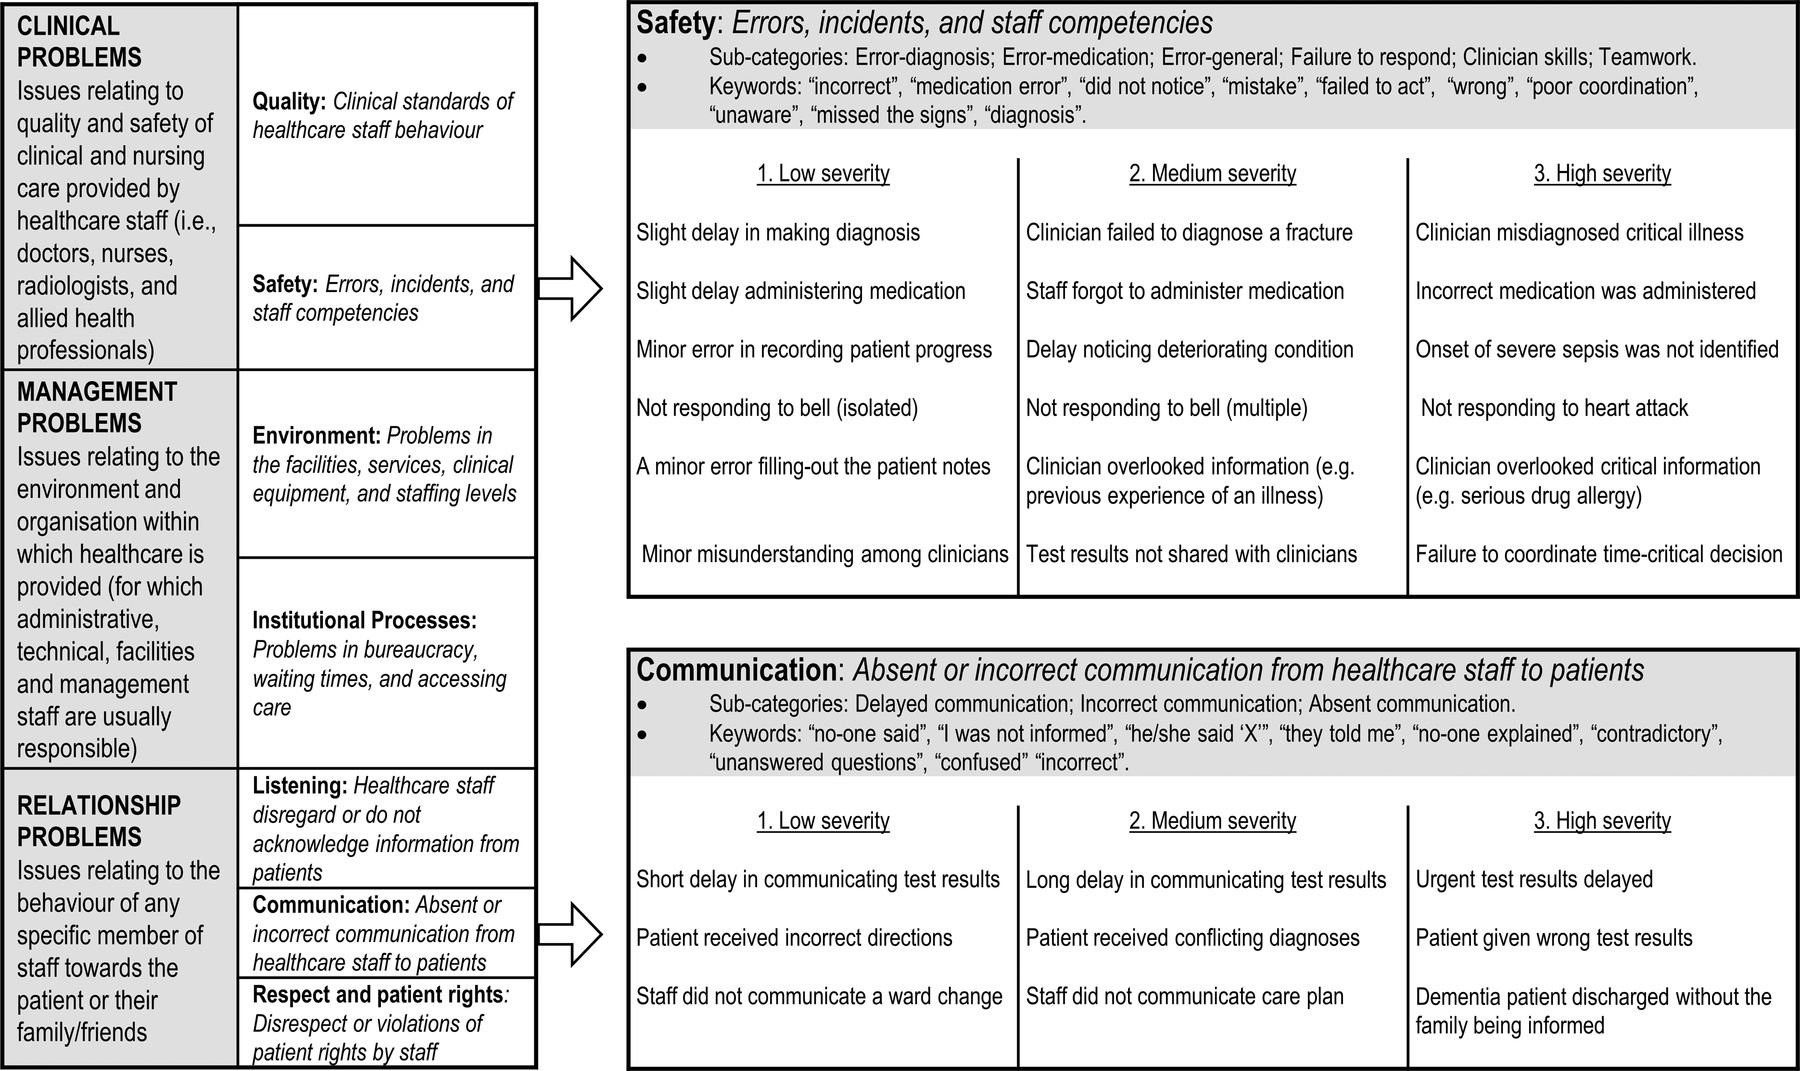 The Healthcare Complaints Analysis Tool: development and